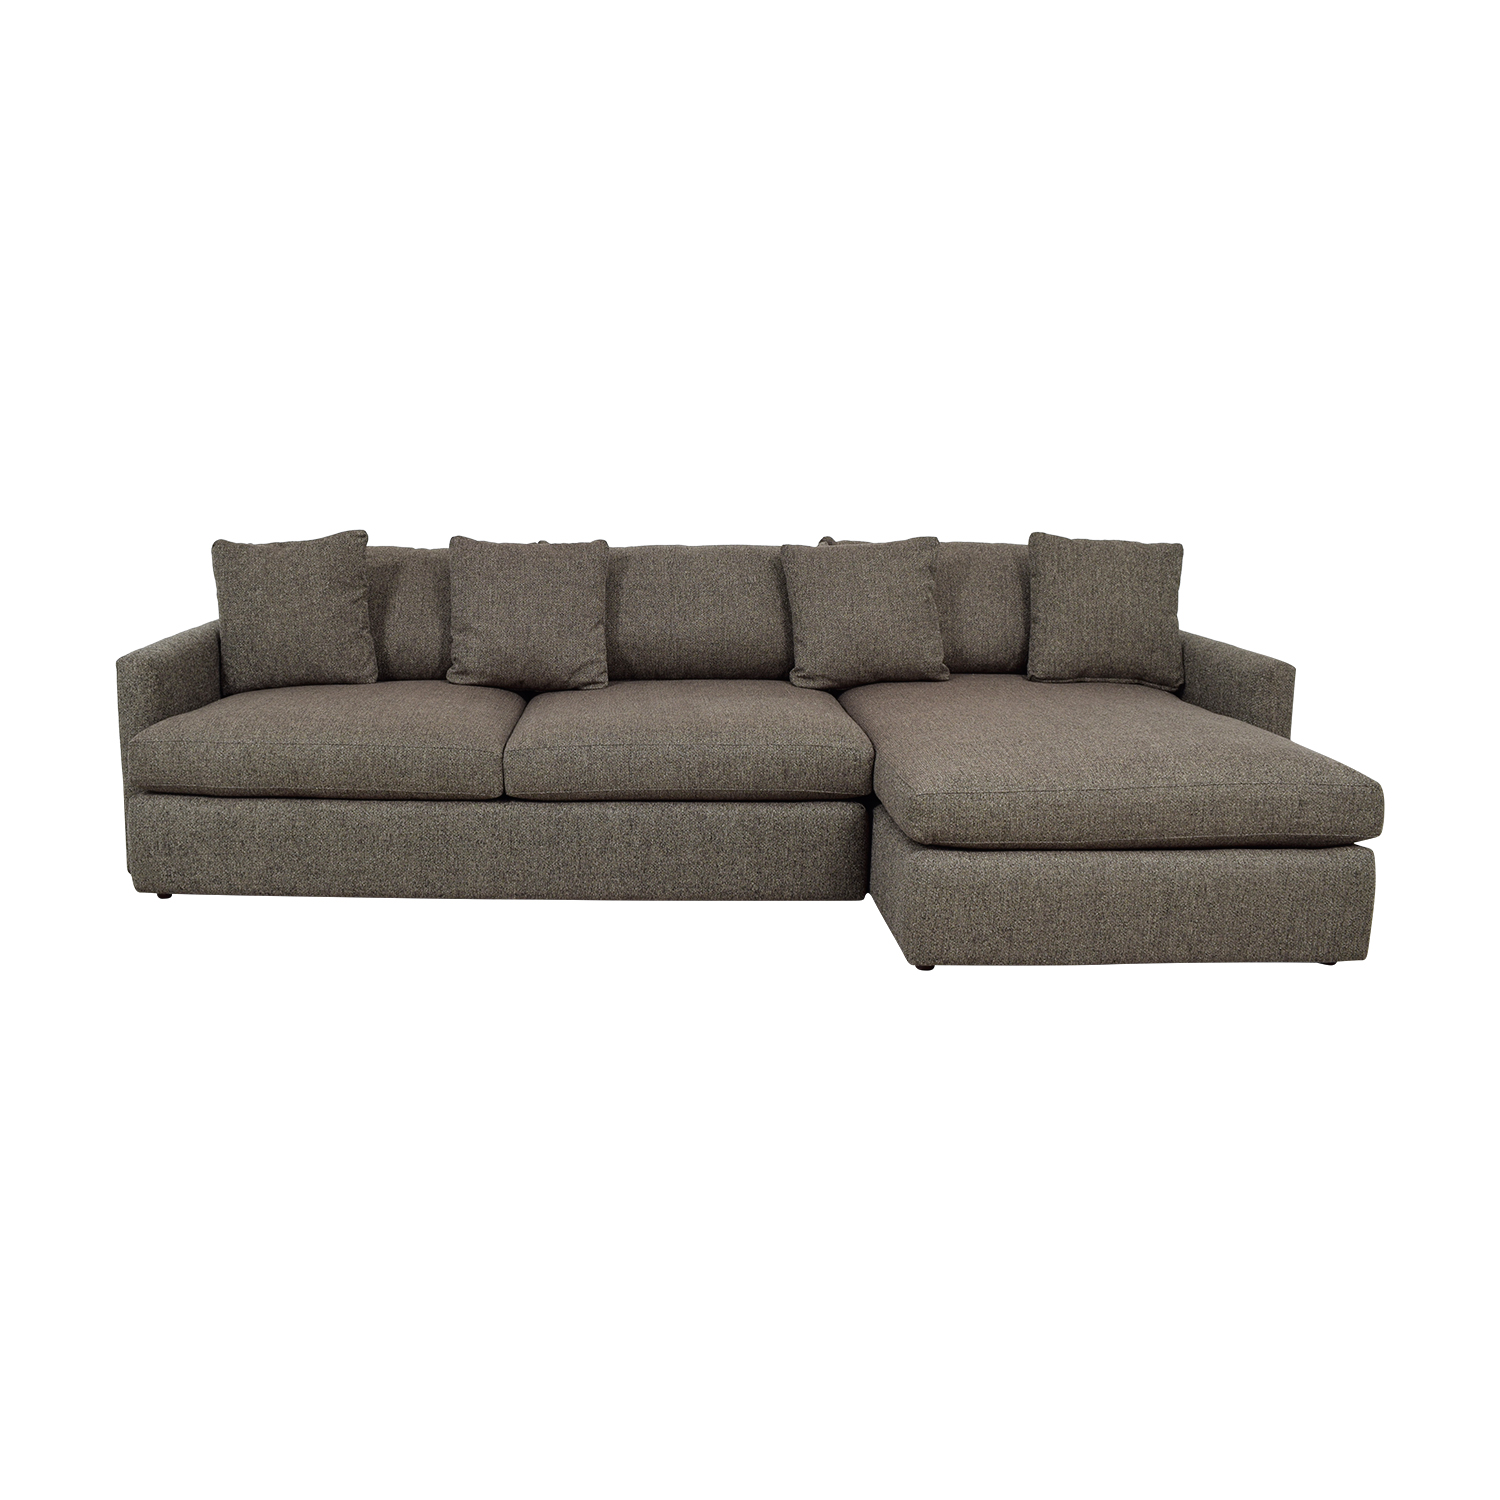 Crate & Barrel Crate & Barrel Lounge II Grey Chaise Sectional discount